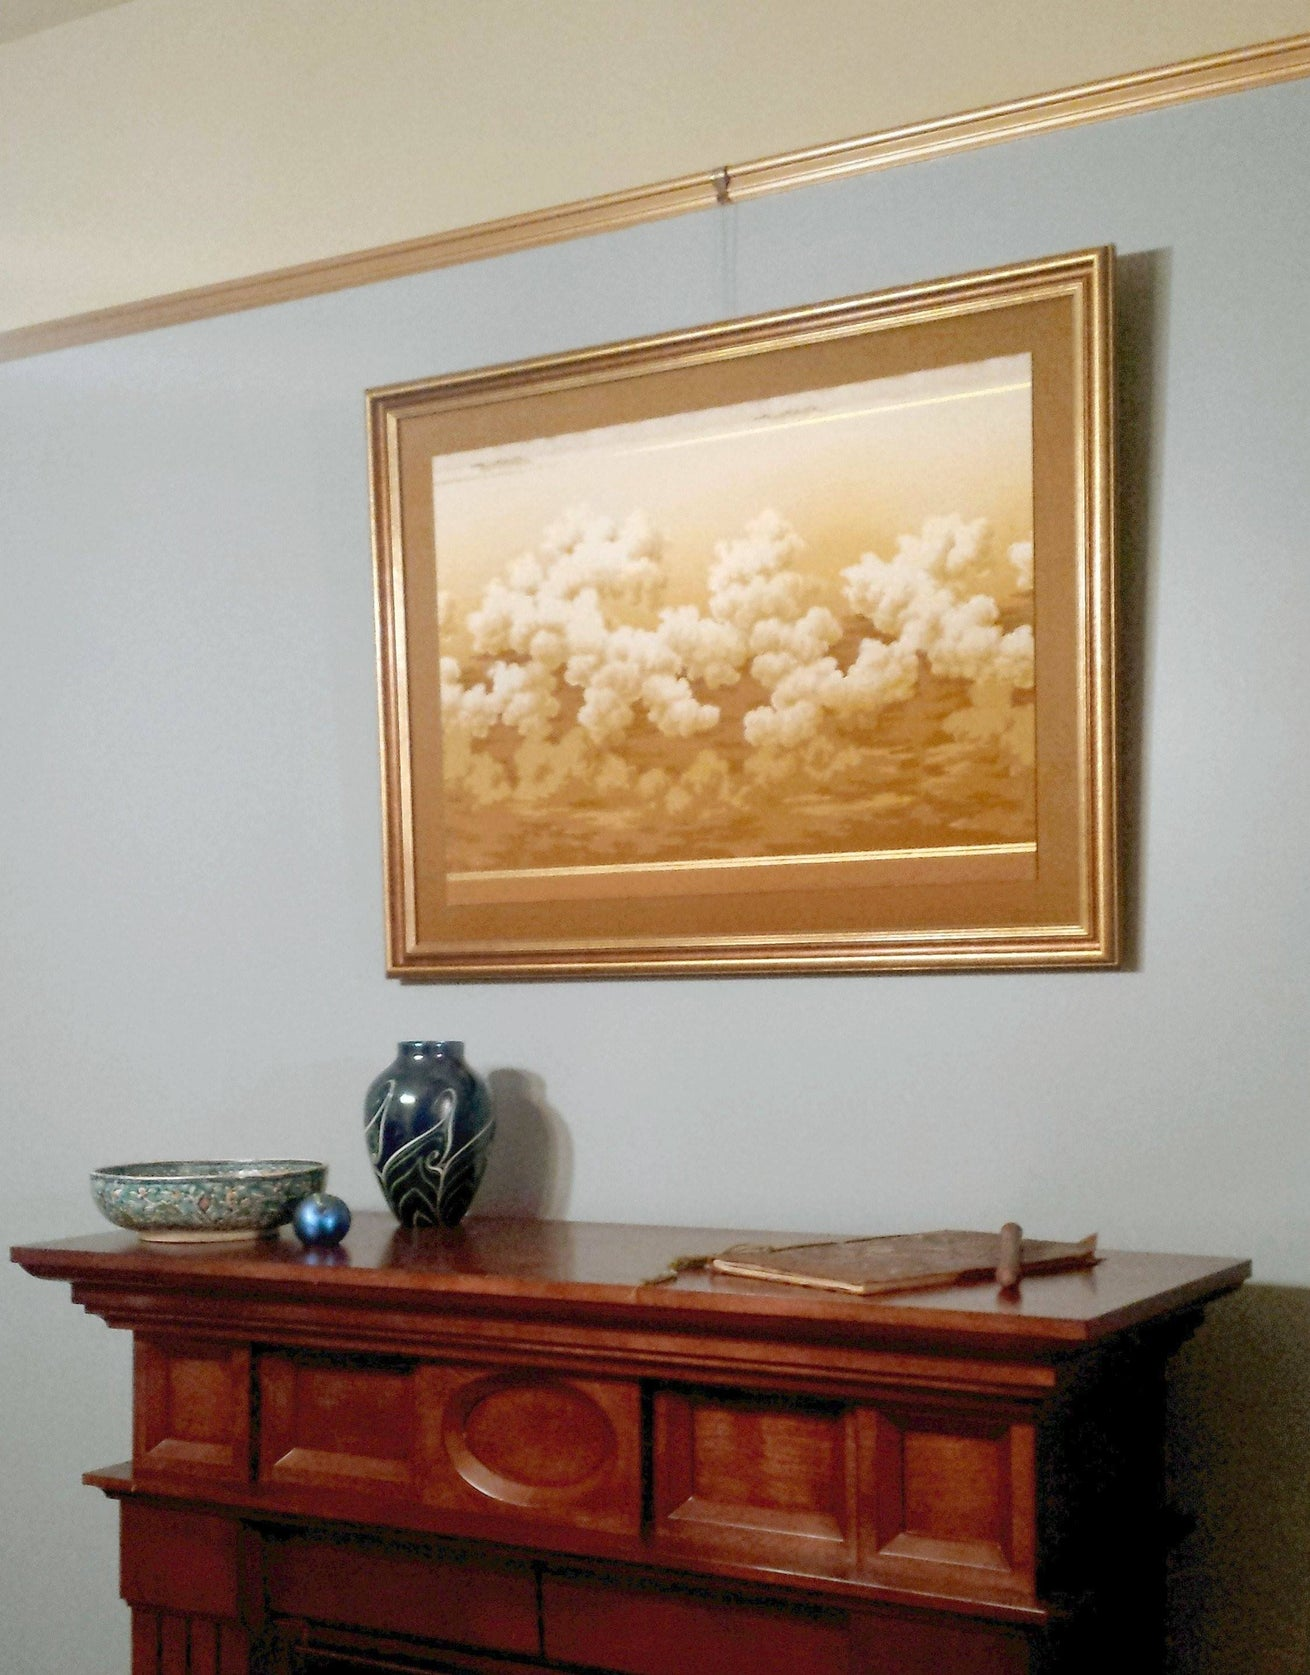 install-blended-gold-cloud-frieze